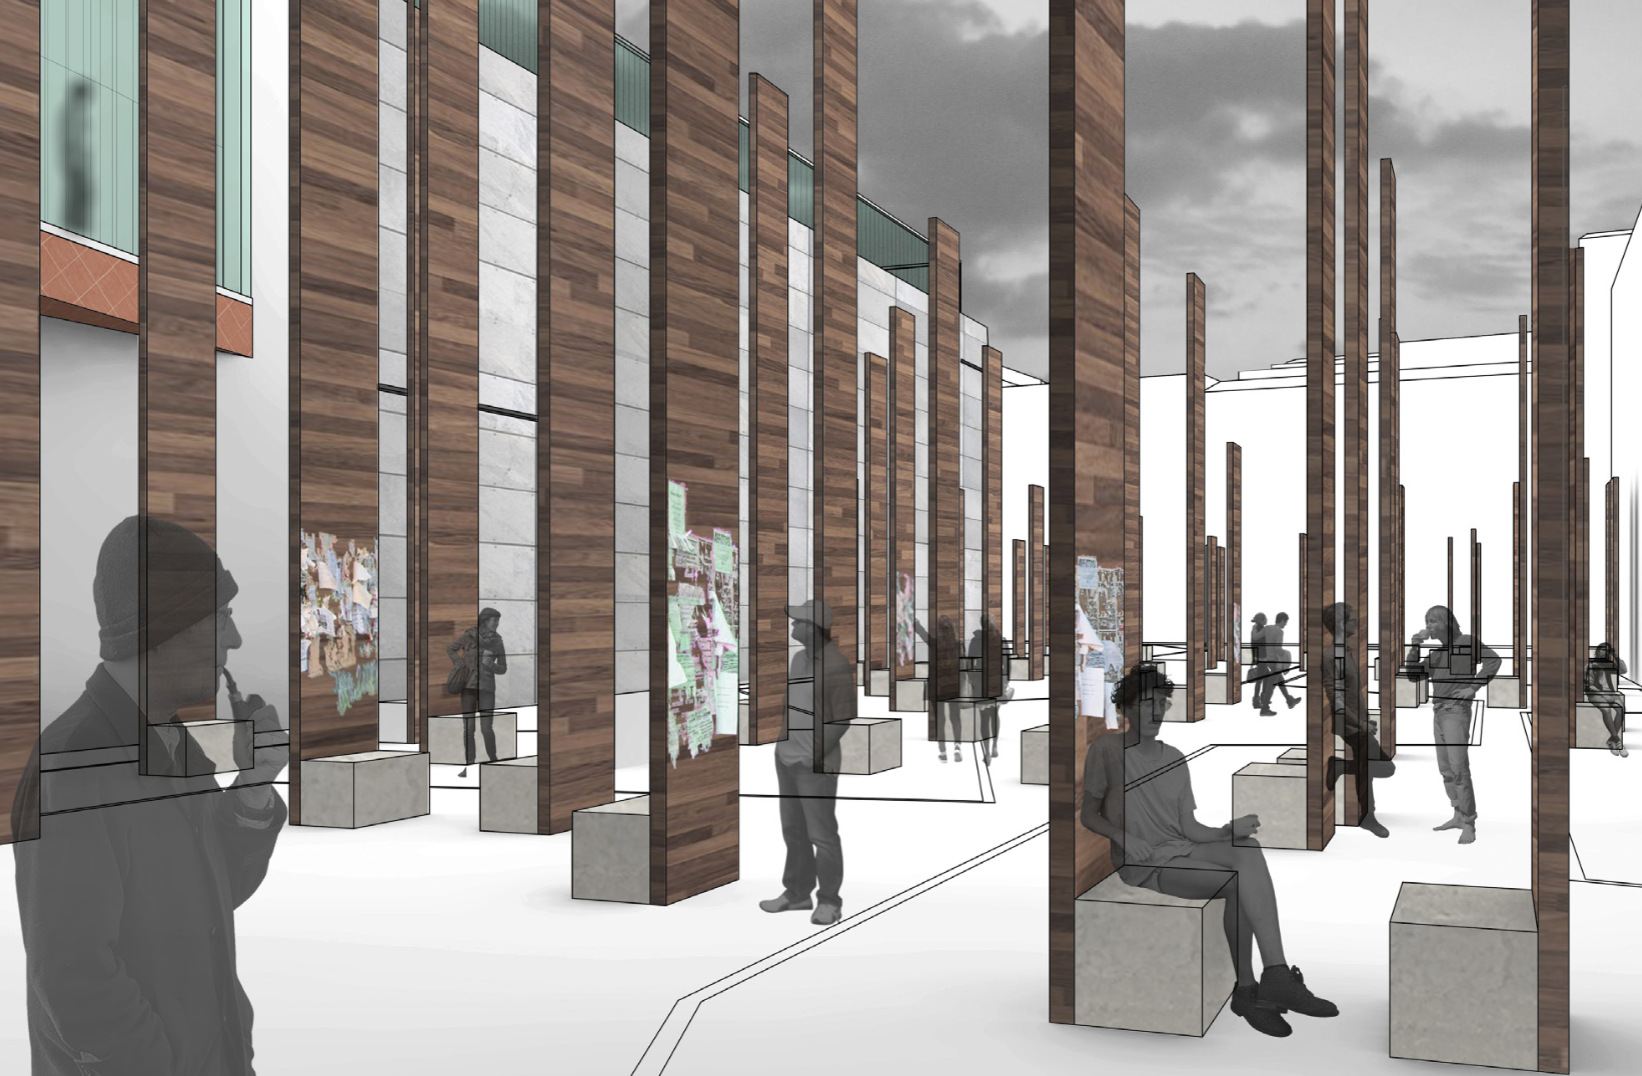 Spring 2015 Students' Talent Search competition. Student: Alex Petruso (Architecture).